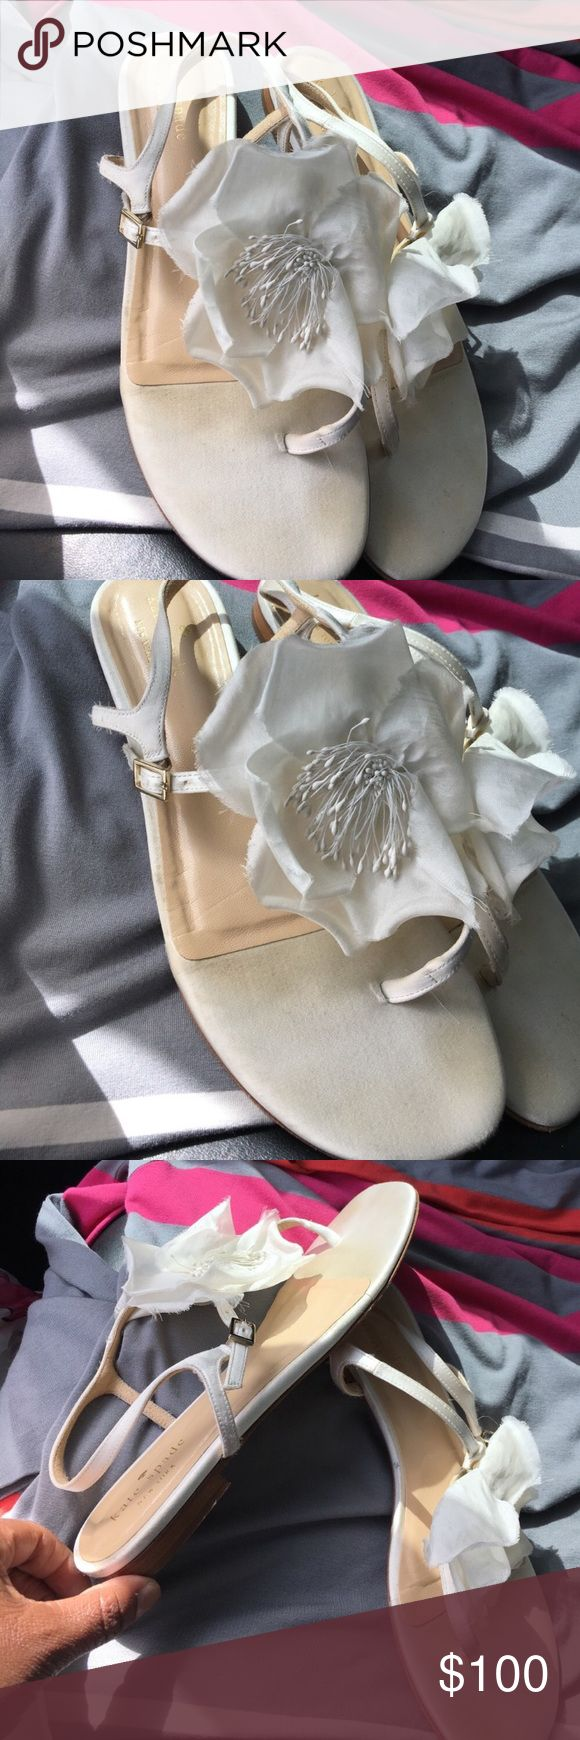 Kate Spade Verbana sandals Kate Spade Verbena sandal. Beautiful flower in top. Adjustable ankle strap. Size 8. Perfect for the summer. These are comfortable to walk around in. Does not come with box. kate spade Shoes Sandals